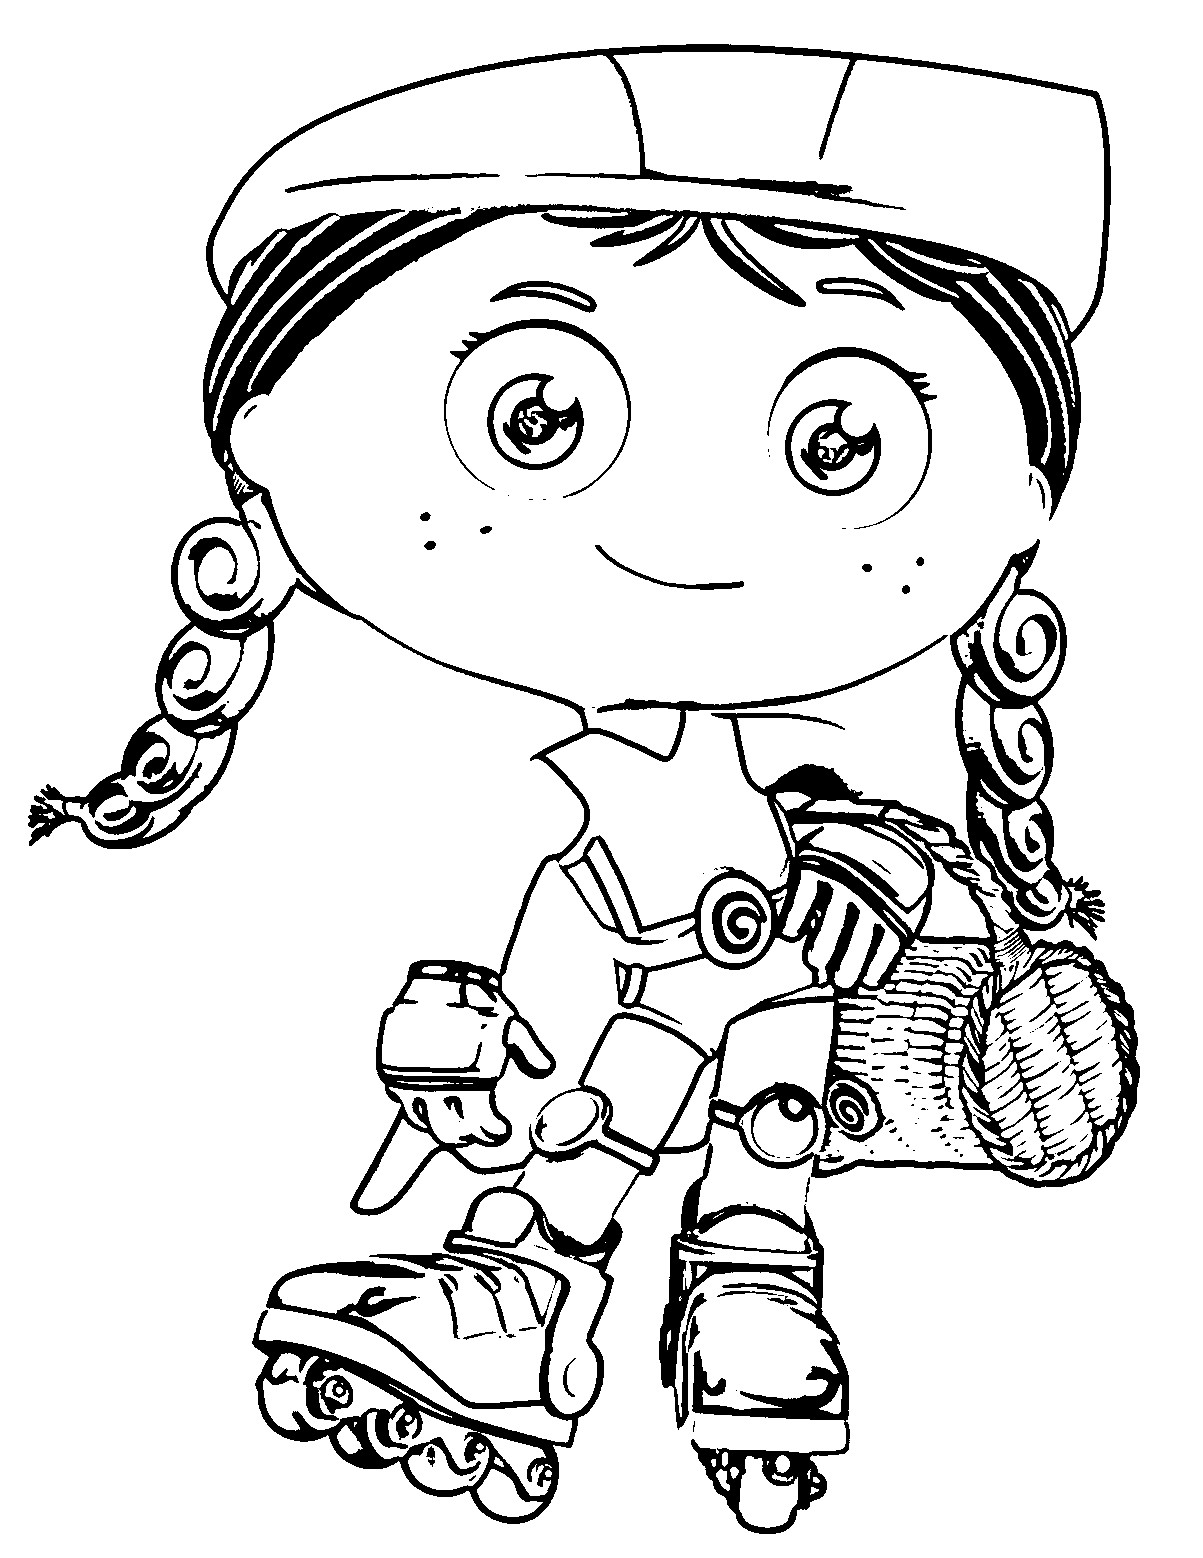 1203x1558 Super Why Coloring Pages Best For Kids Ribsvigyapan Com Tearing